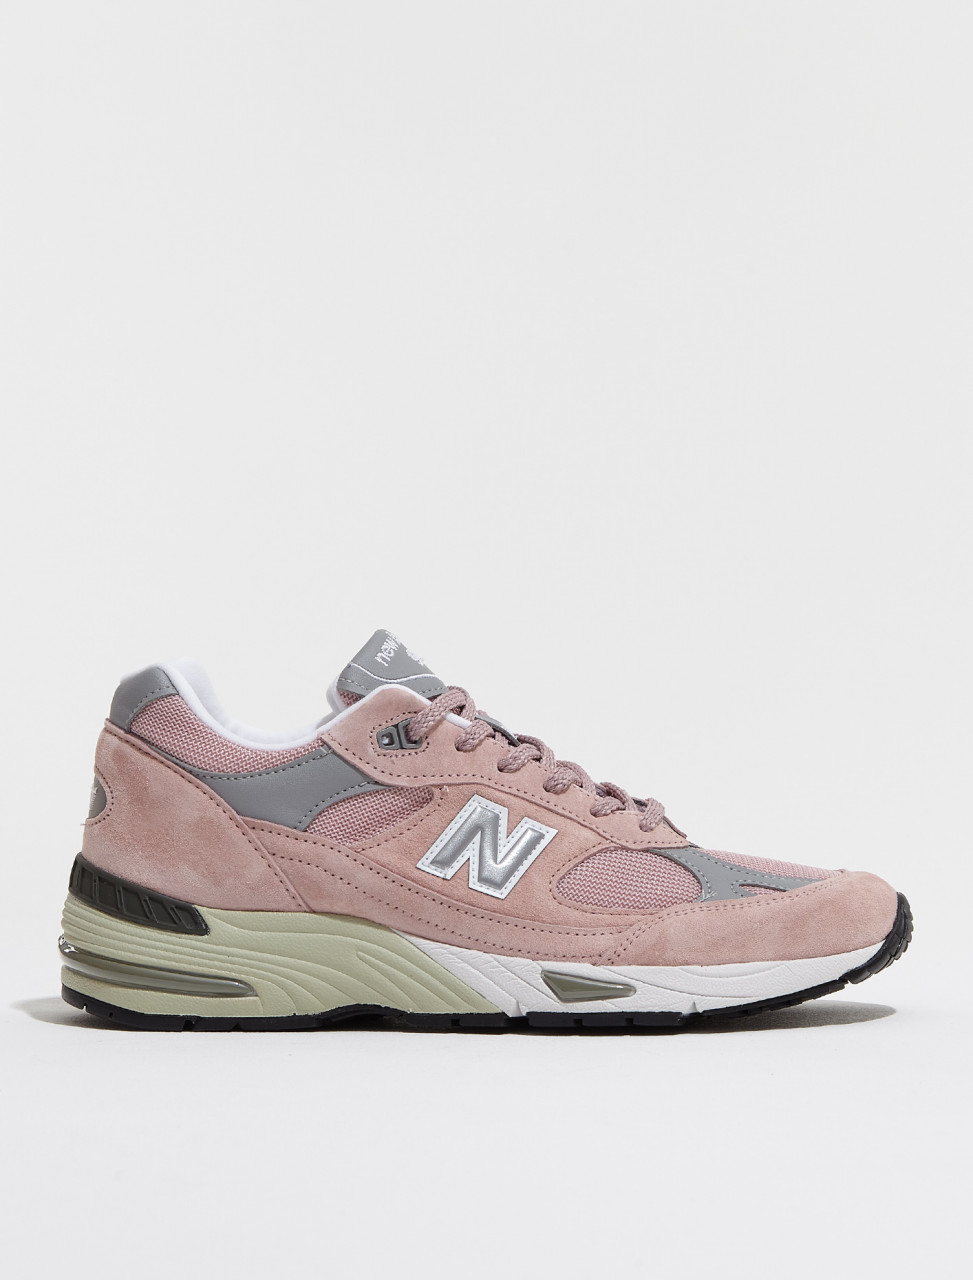 M991PNK NEW BALANCE M 991 'MADE IN ENGLAND' SNEAKER IN PINK